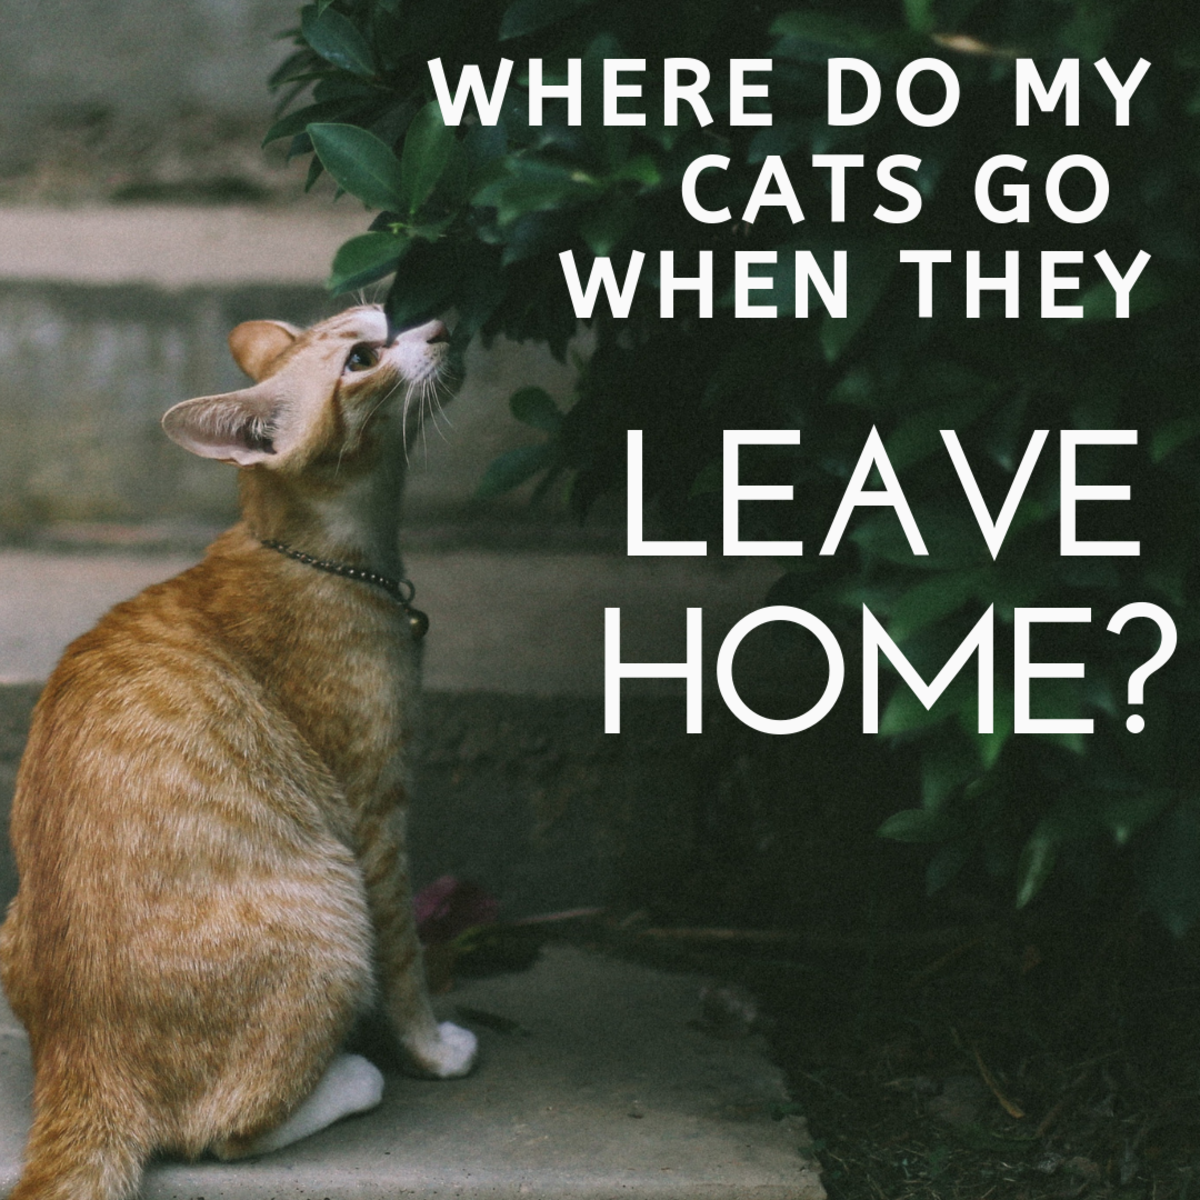 Why do cats leave for days at a time and then return home?